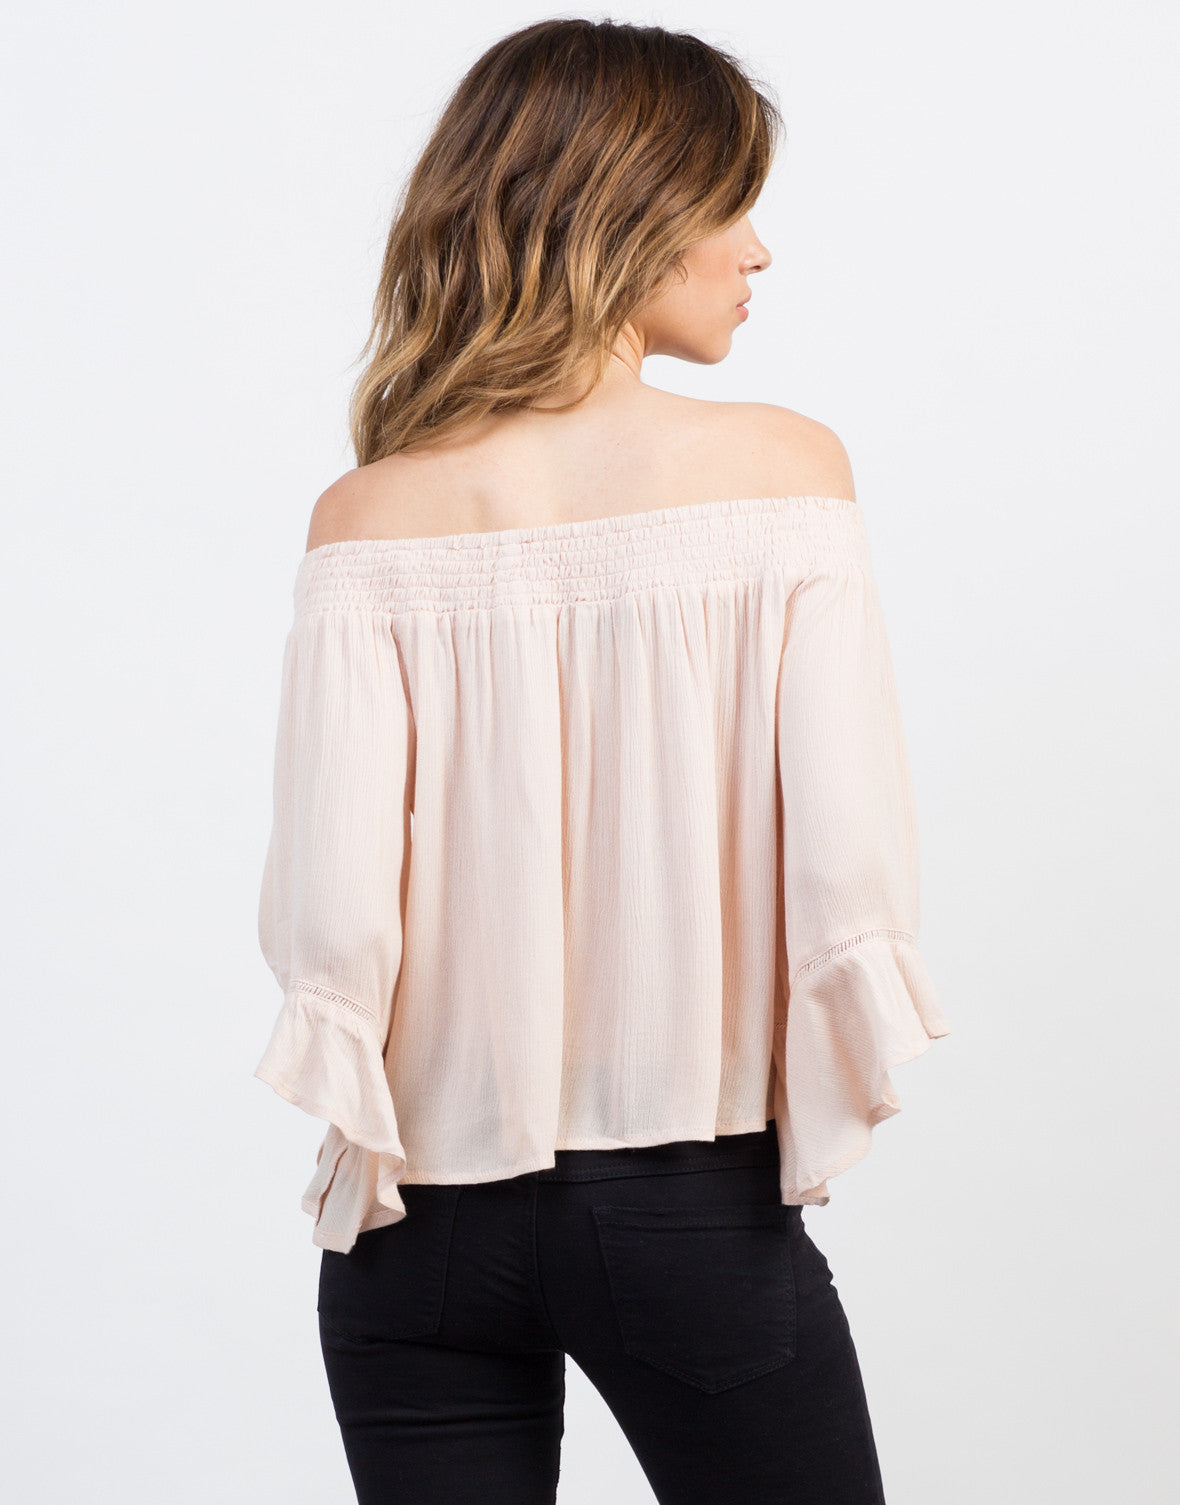 Back View of Off-the-Shoulder Flowy Gauze Top